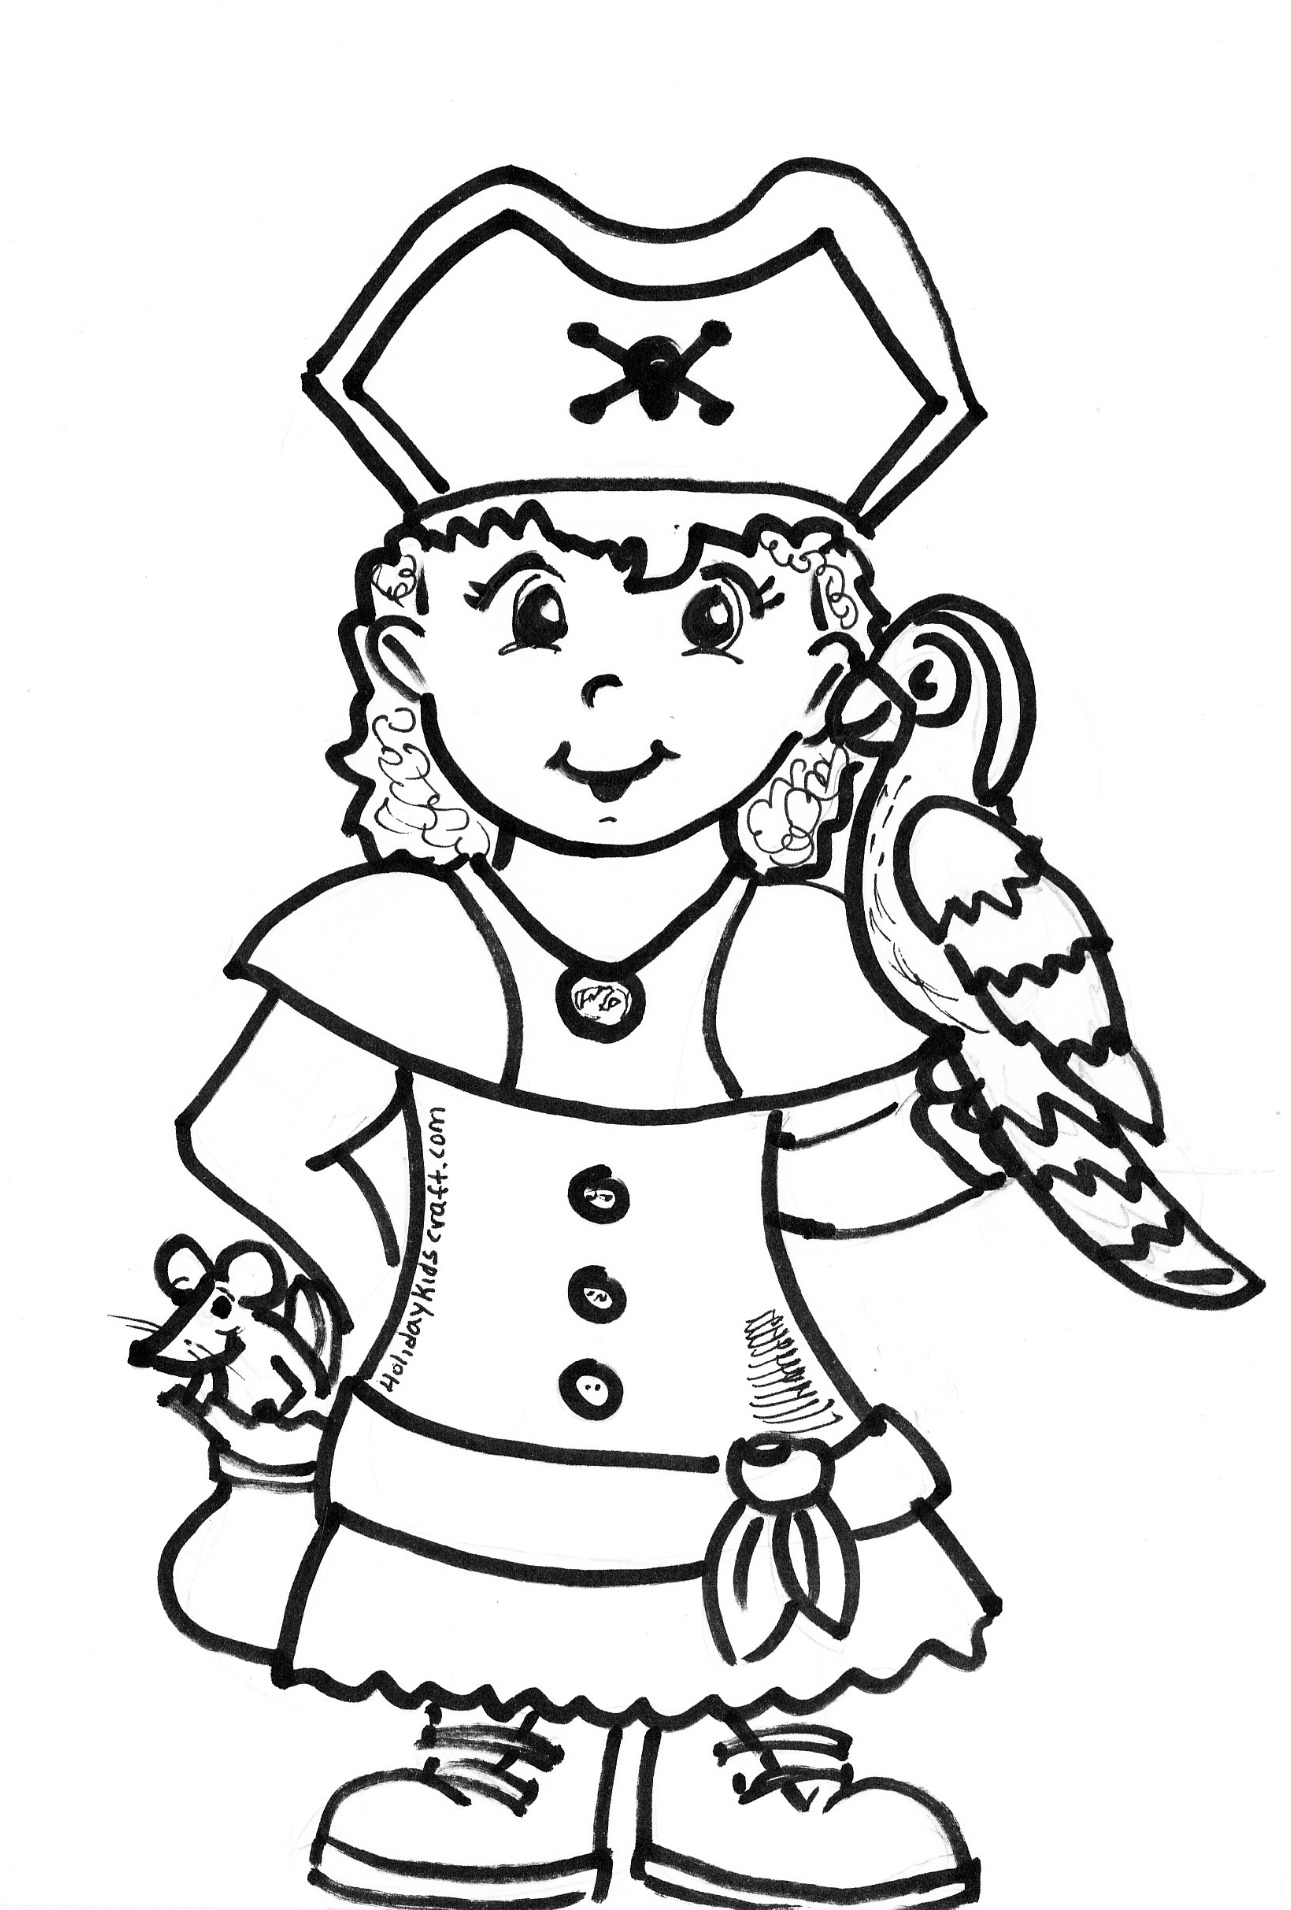 pirate images to colour pirates of the caribbean coloring pages kidsuki colour images to pirate